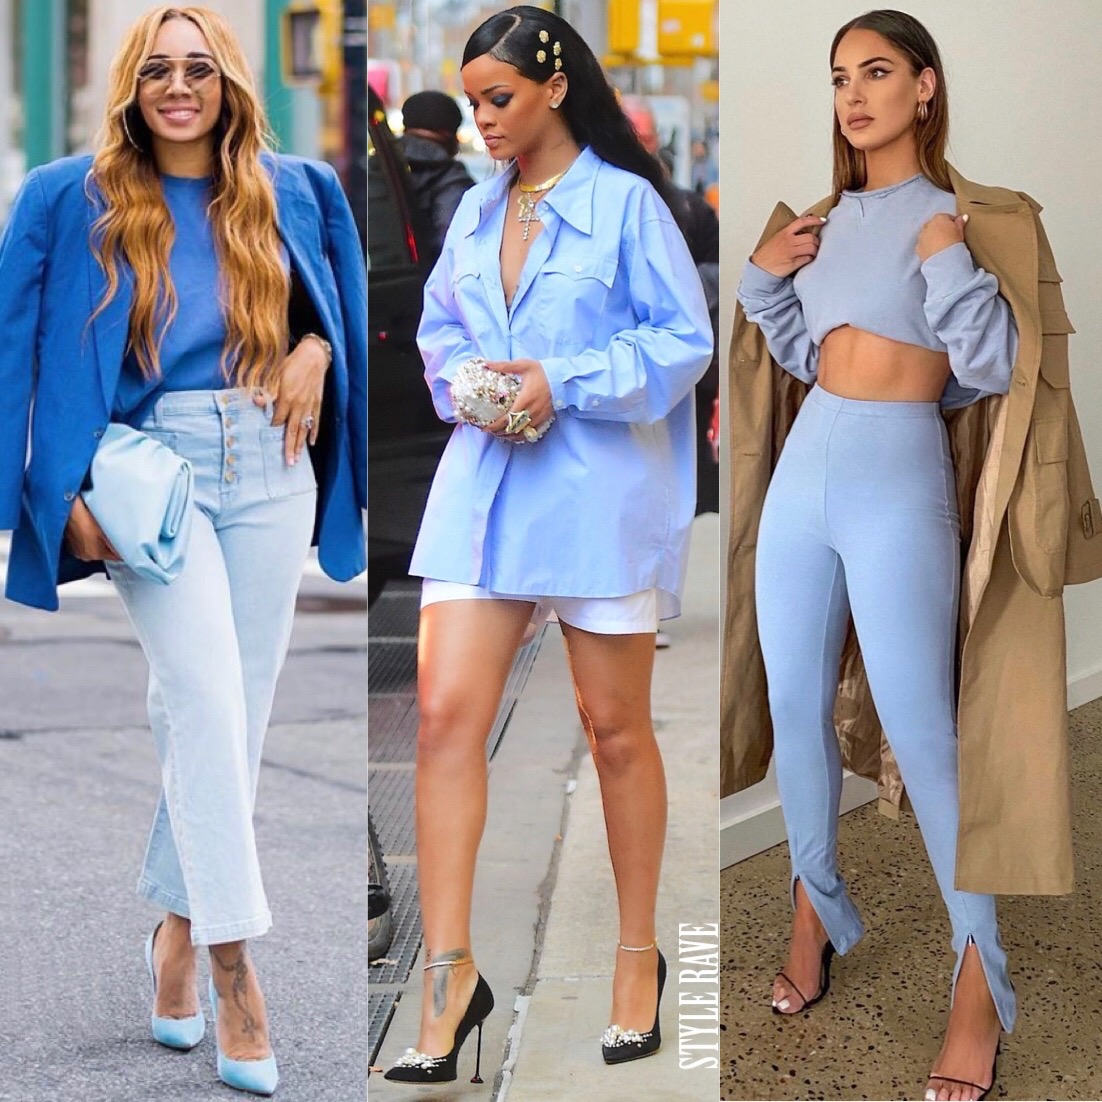 celebrities and instagram fashion influencers wearing baby blue